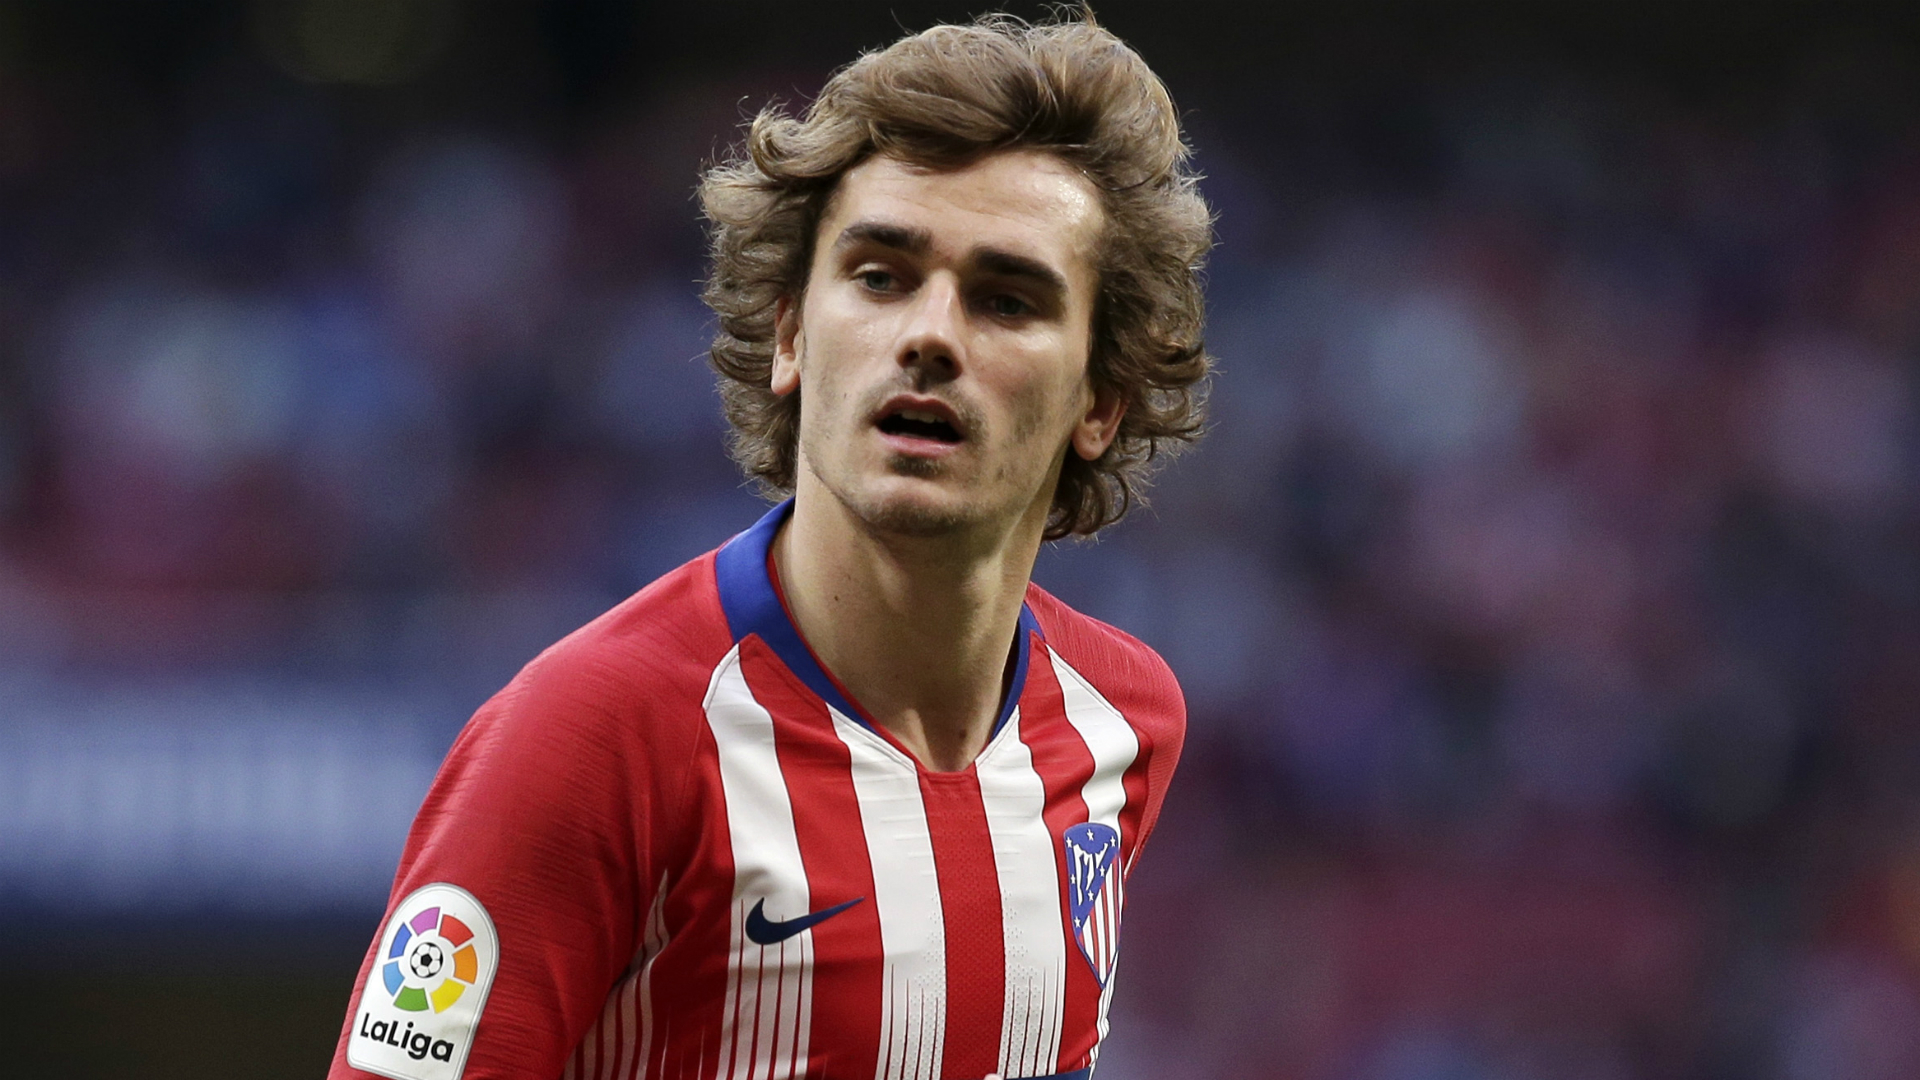 Griezmann will play for Barca, I've known since March – Atletico Madrid CEO